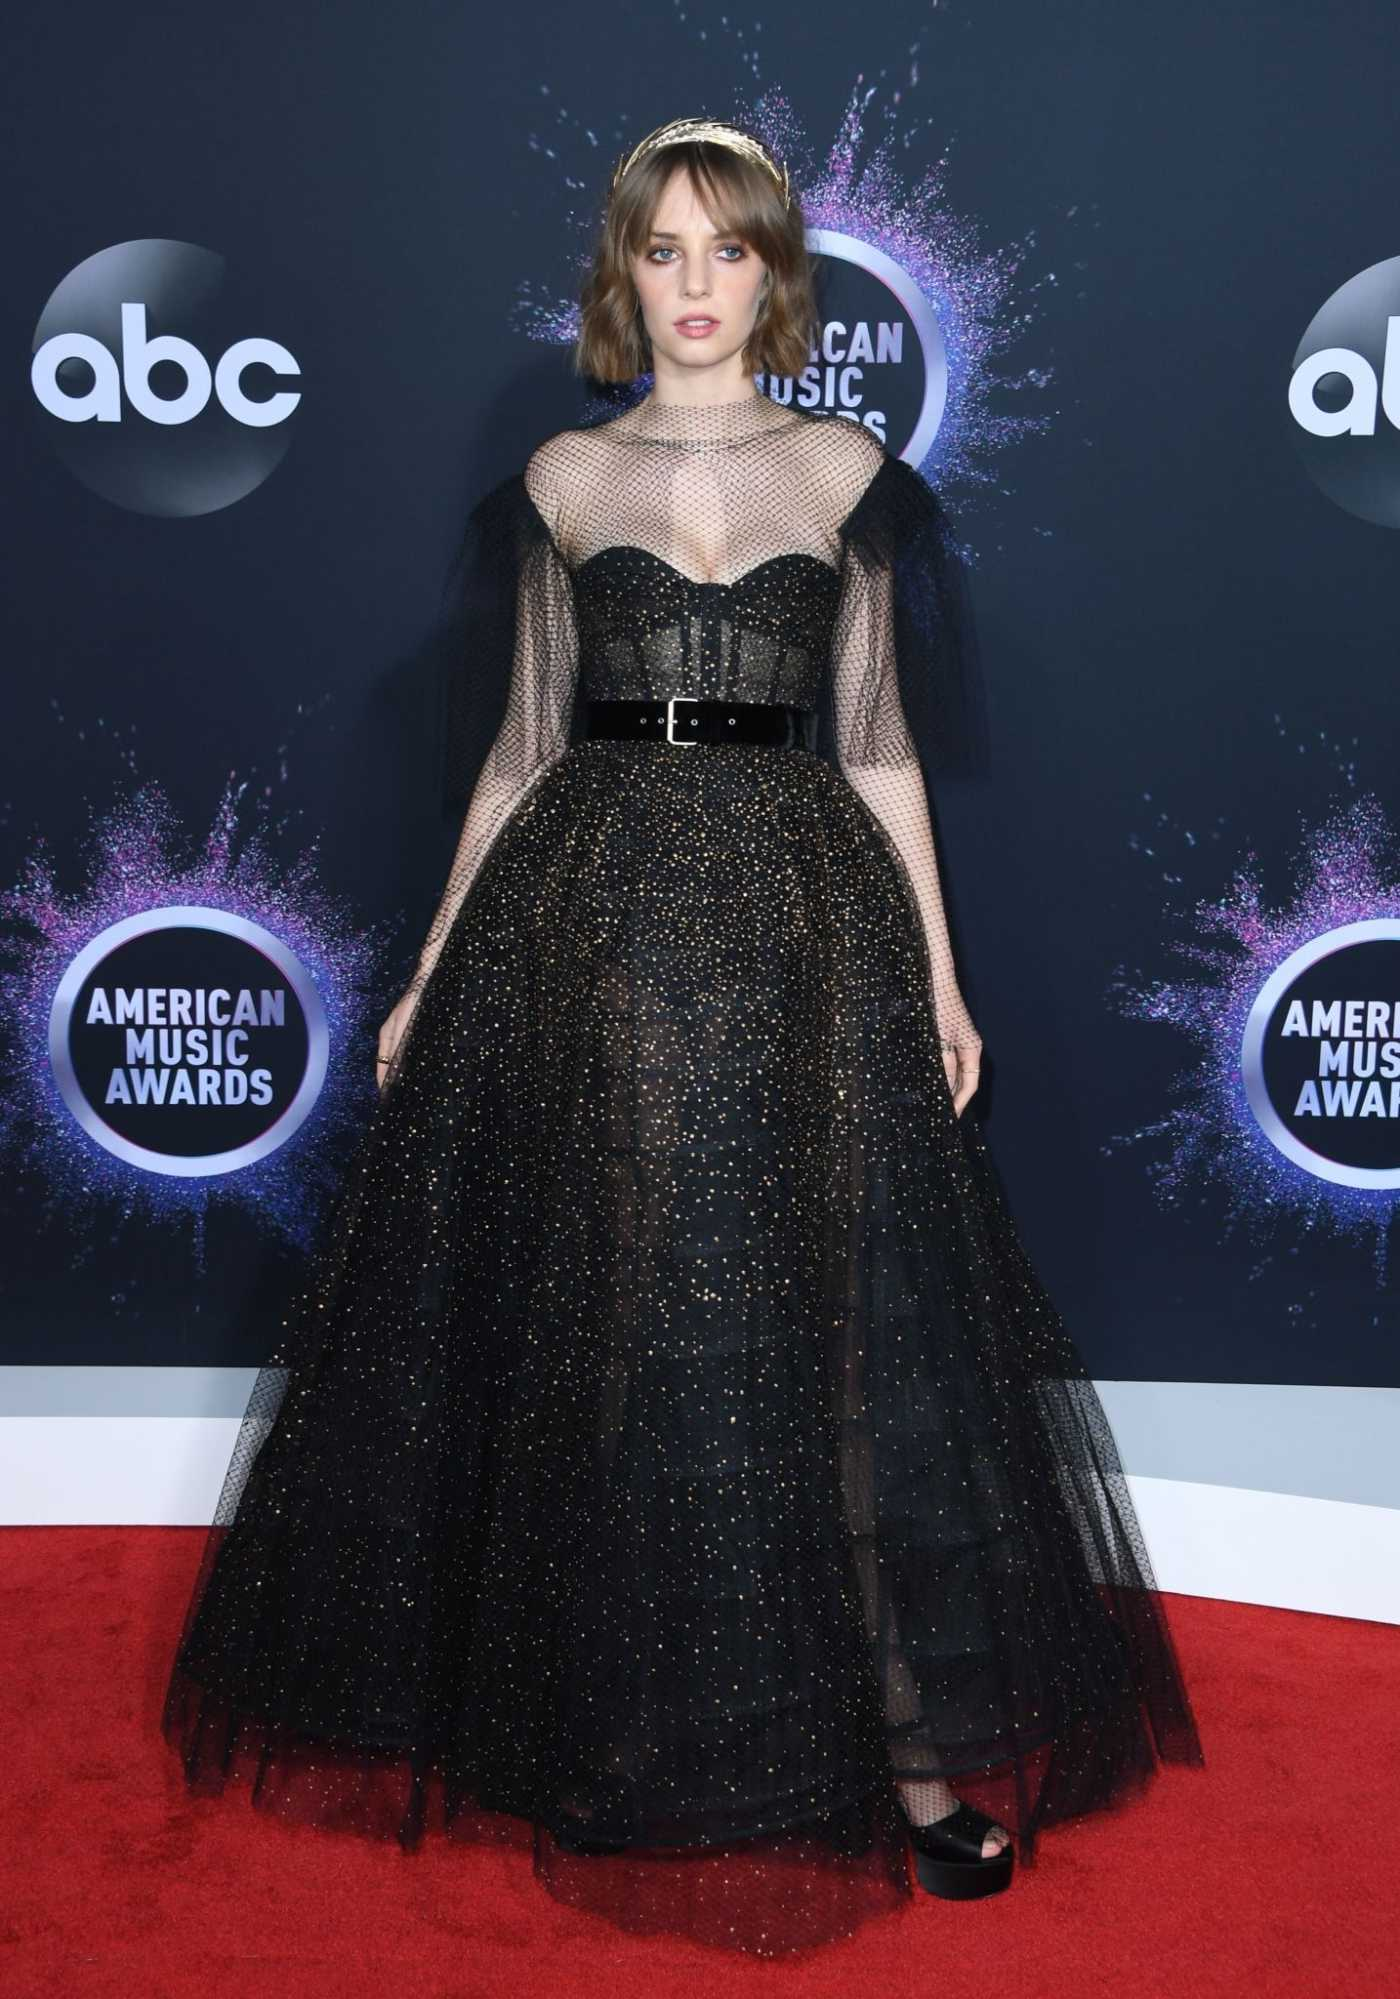 Maya Hawke Attends the 2019 American Music Awards at Microsoft Theater in Los Angeles 11/24/2019